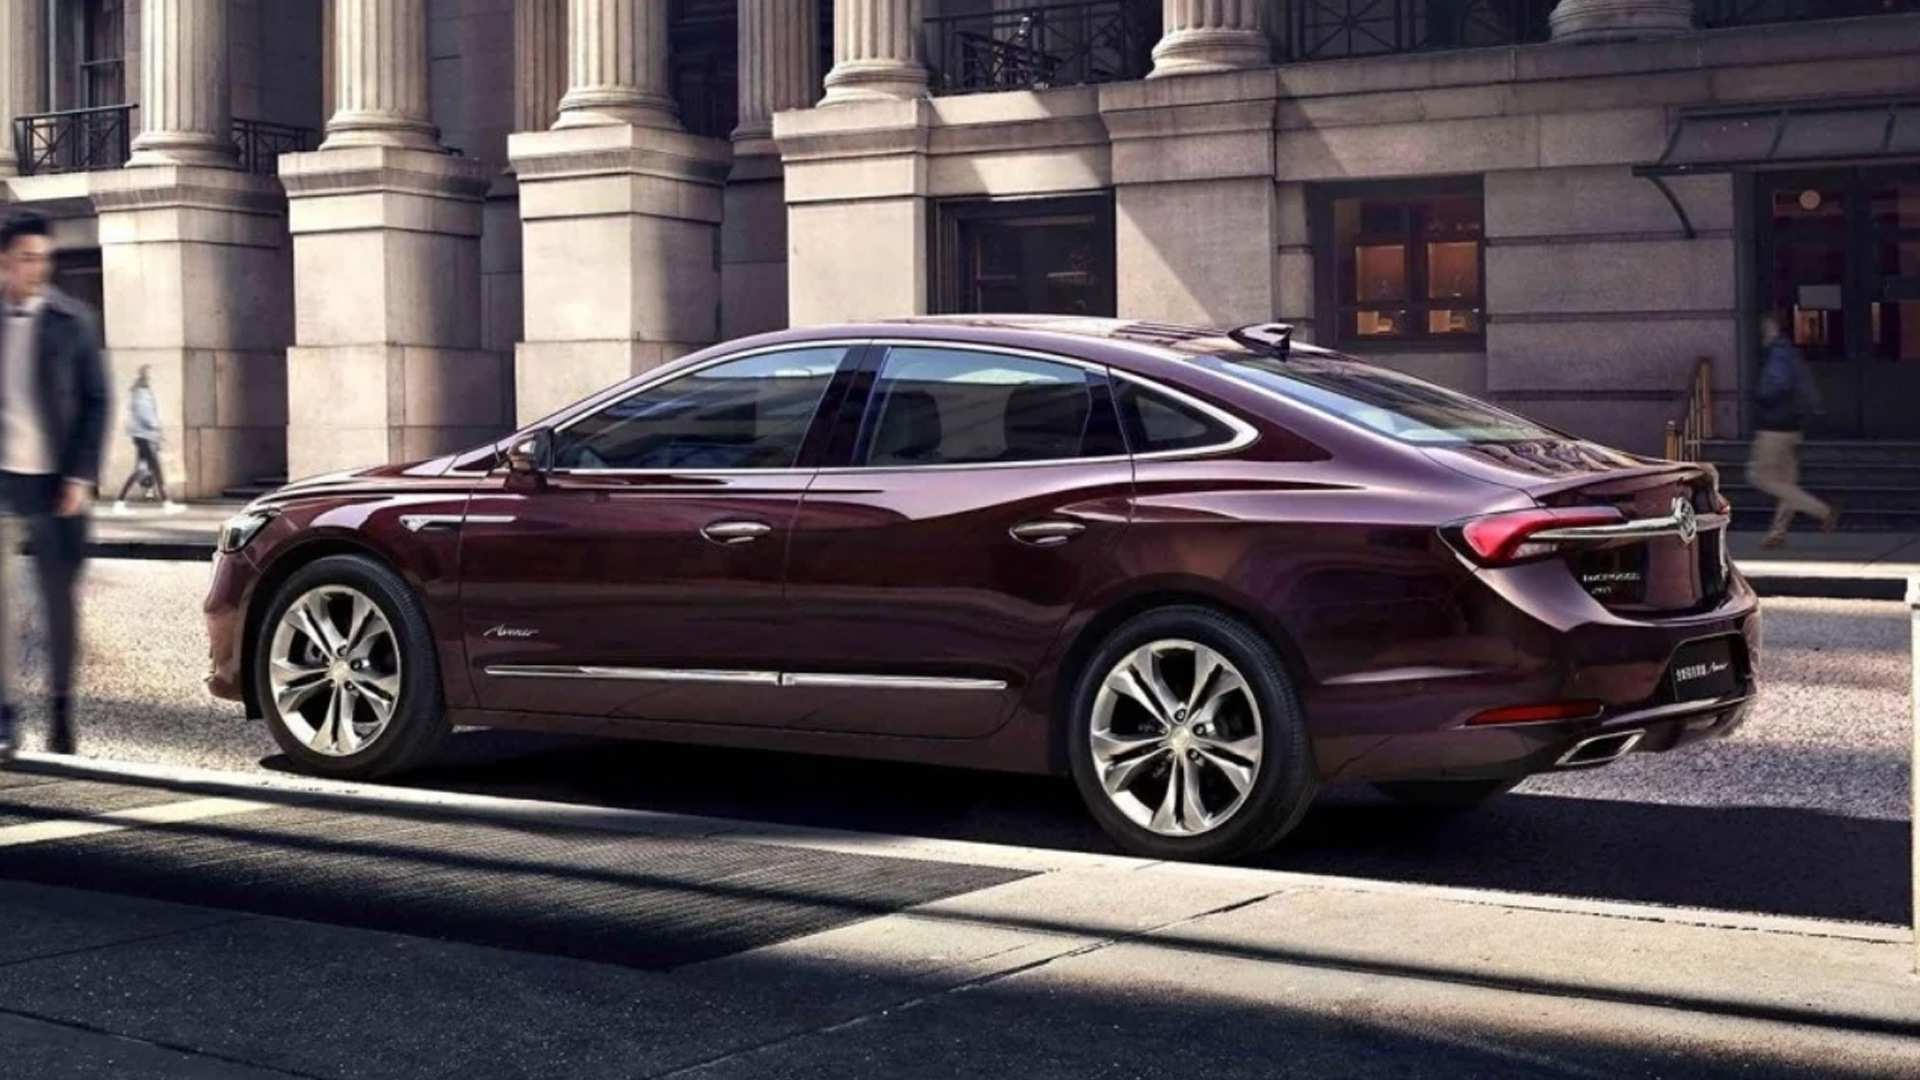 40 All New 2020 Buick Cars Exterior And Interior